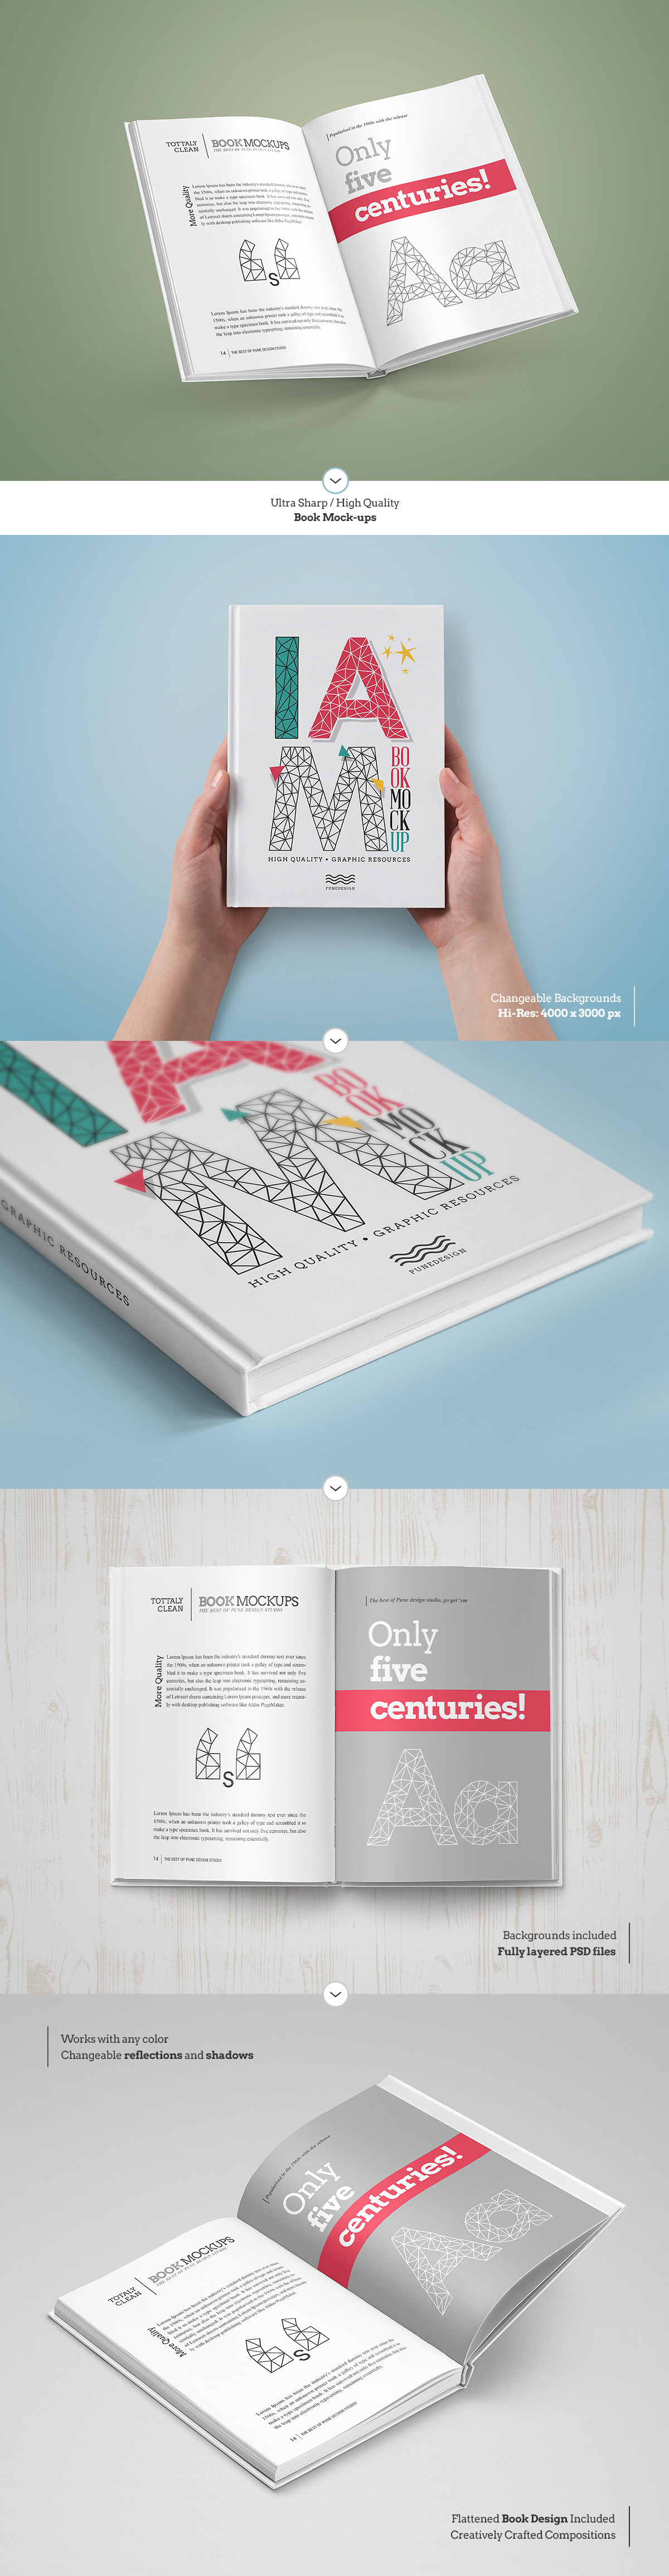 Book-mockup-Hardcover-Edition-01